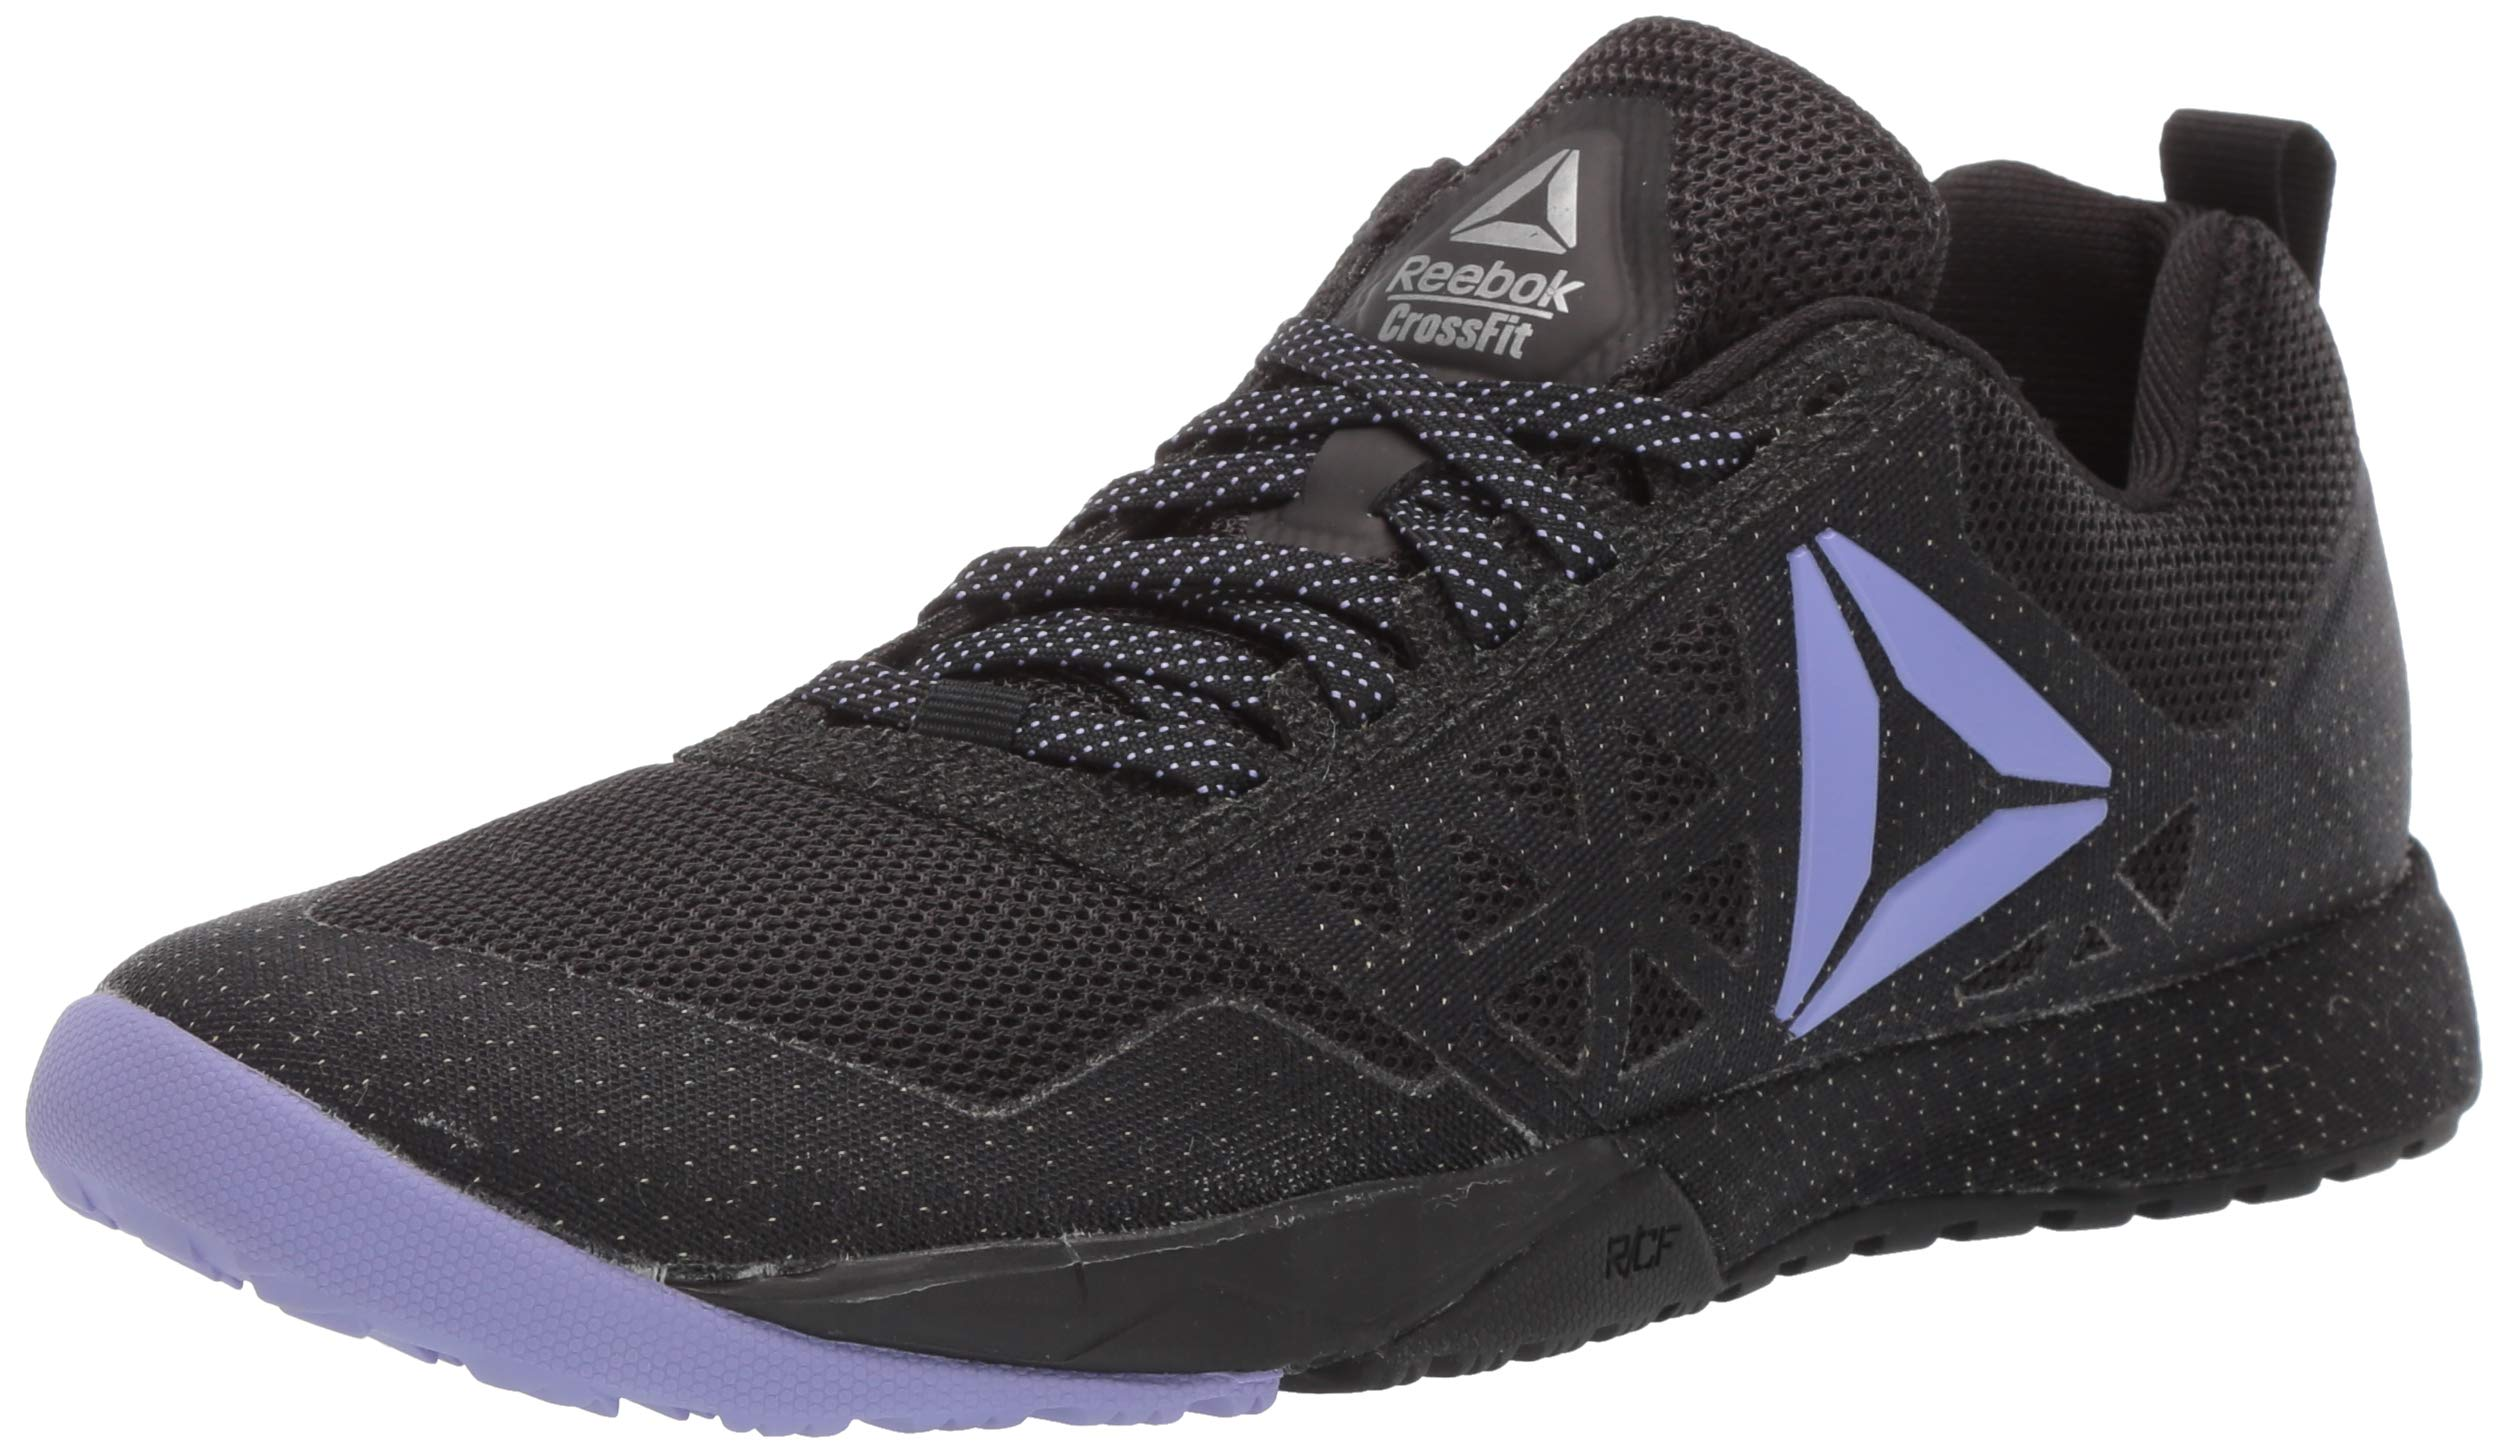 Reebok Women's CROSSFIT Nano 6.0 Cvrt Cross Trainer, Black/Moonpool/Pure Silver/White, 5.5 M US by Reebok